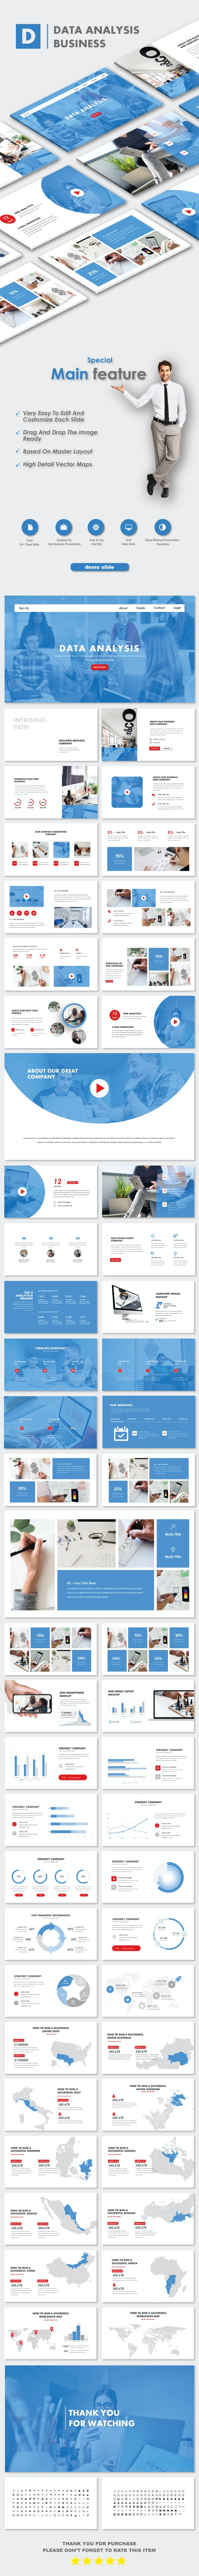 Data Analysis Business PowerPoint Templates - Business PowerPoint Templates